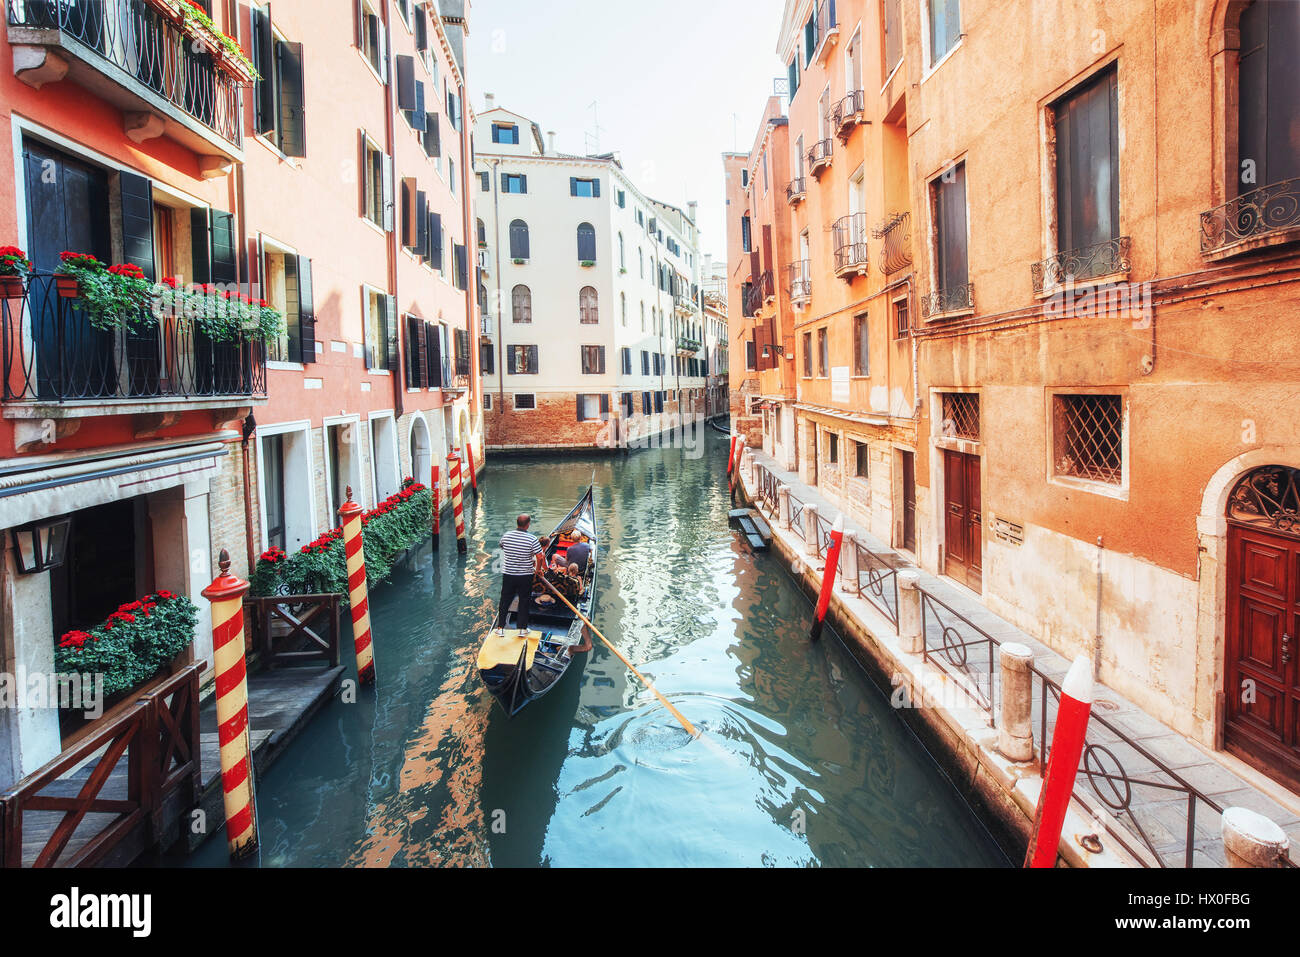 Gondolas on canal in Venice. Venice is a popular tourist destination of Europe - Stock Image